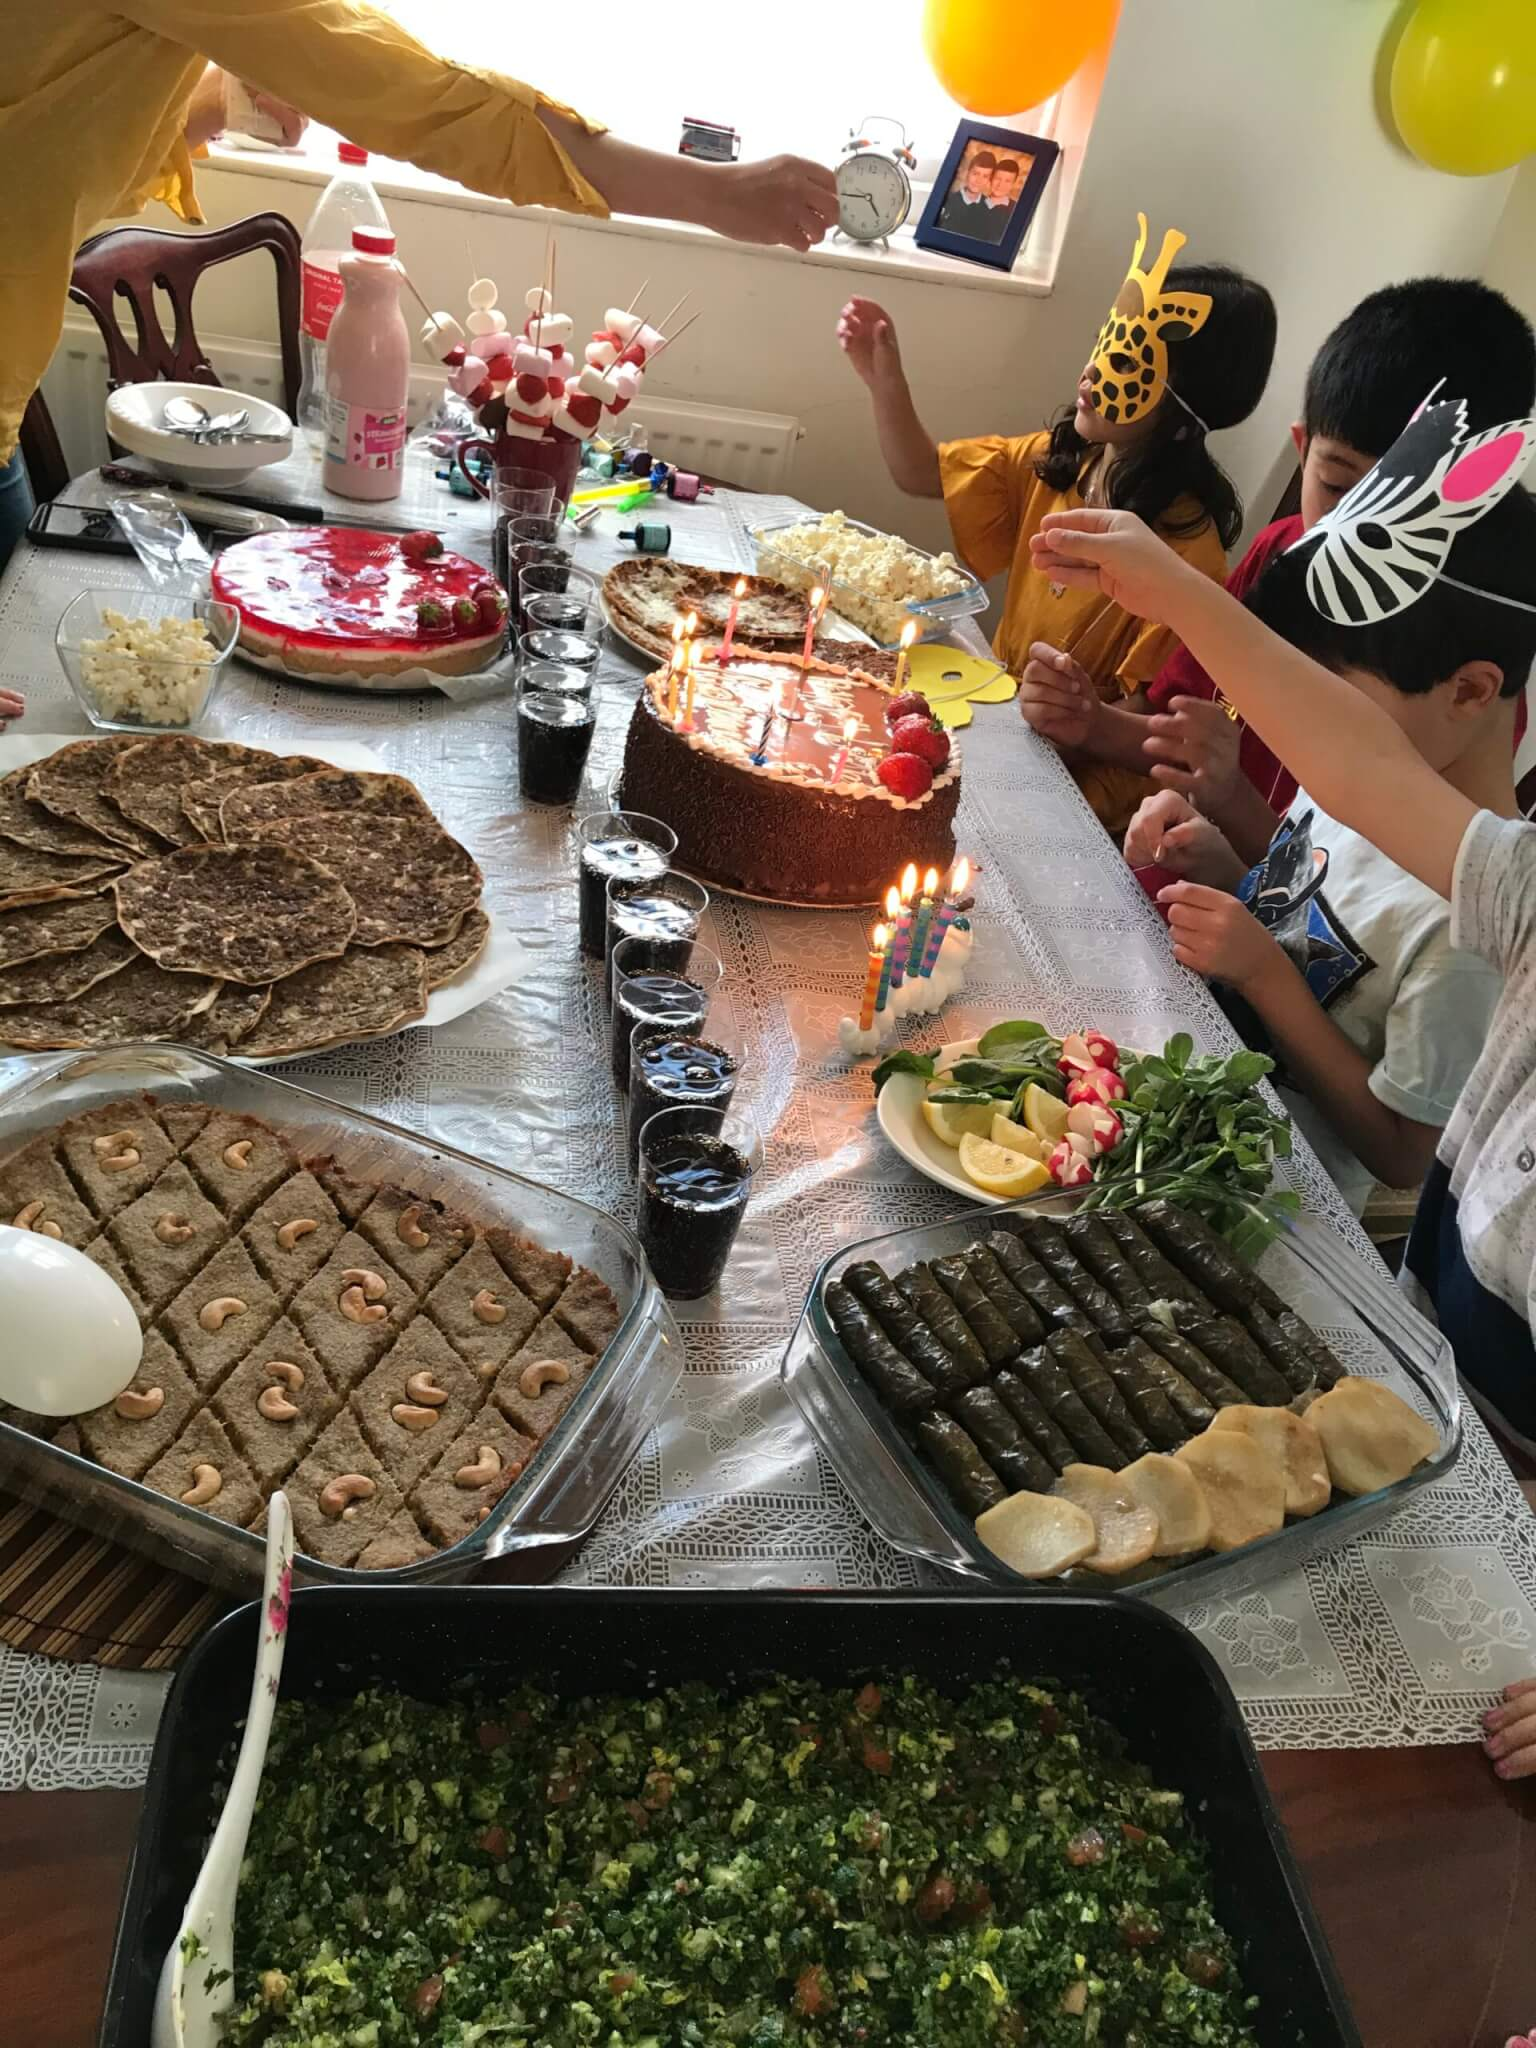 05: A Syrian family living in England were finally able to visit friends after almost three months for a birthday party with their children.